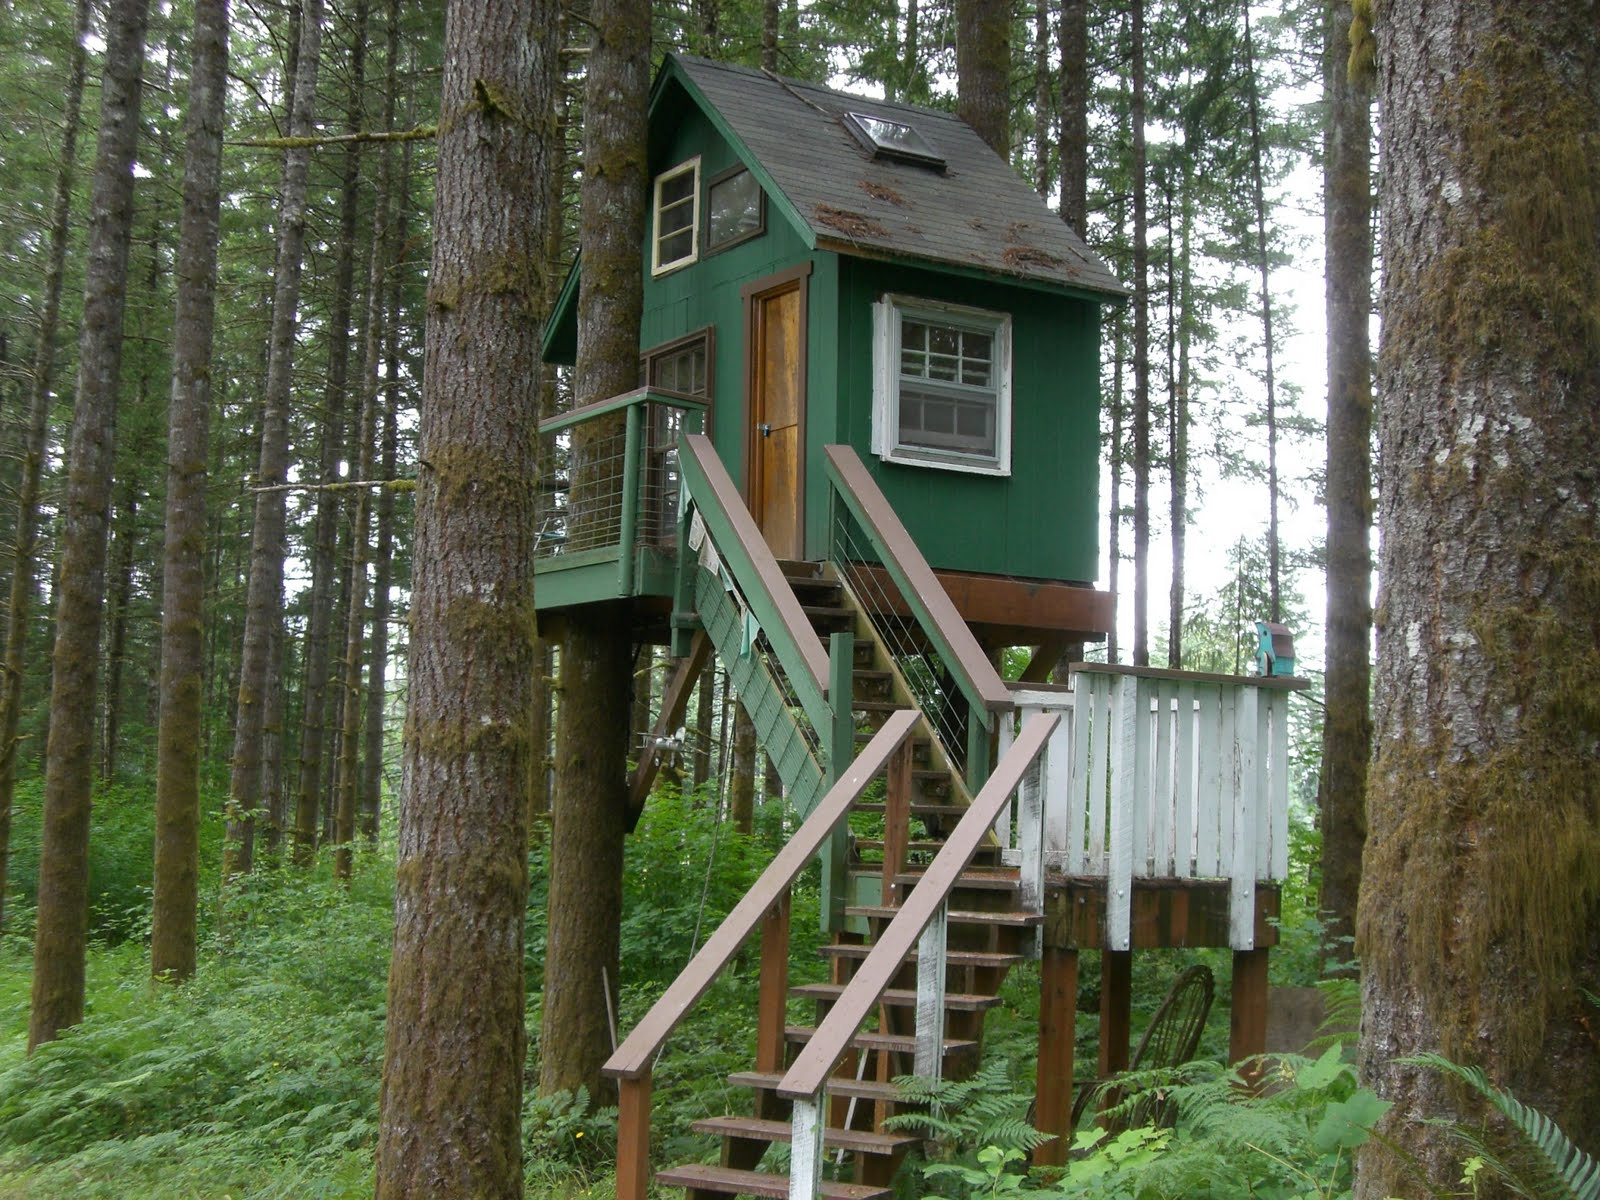 Simple Treehouse: Pictures Of Tree Houses And Play Houses From Around The